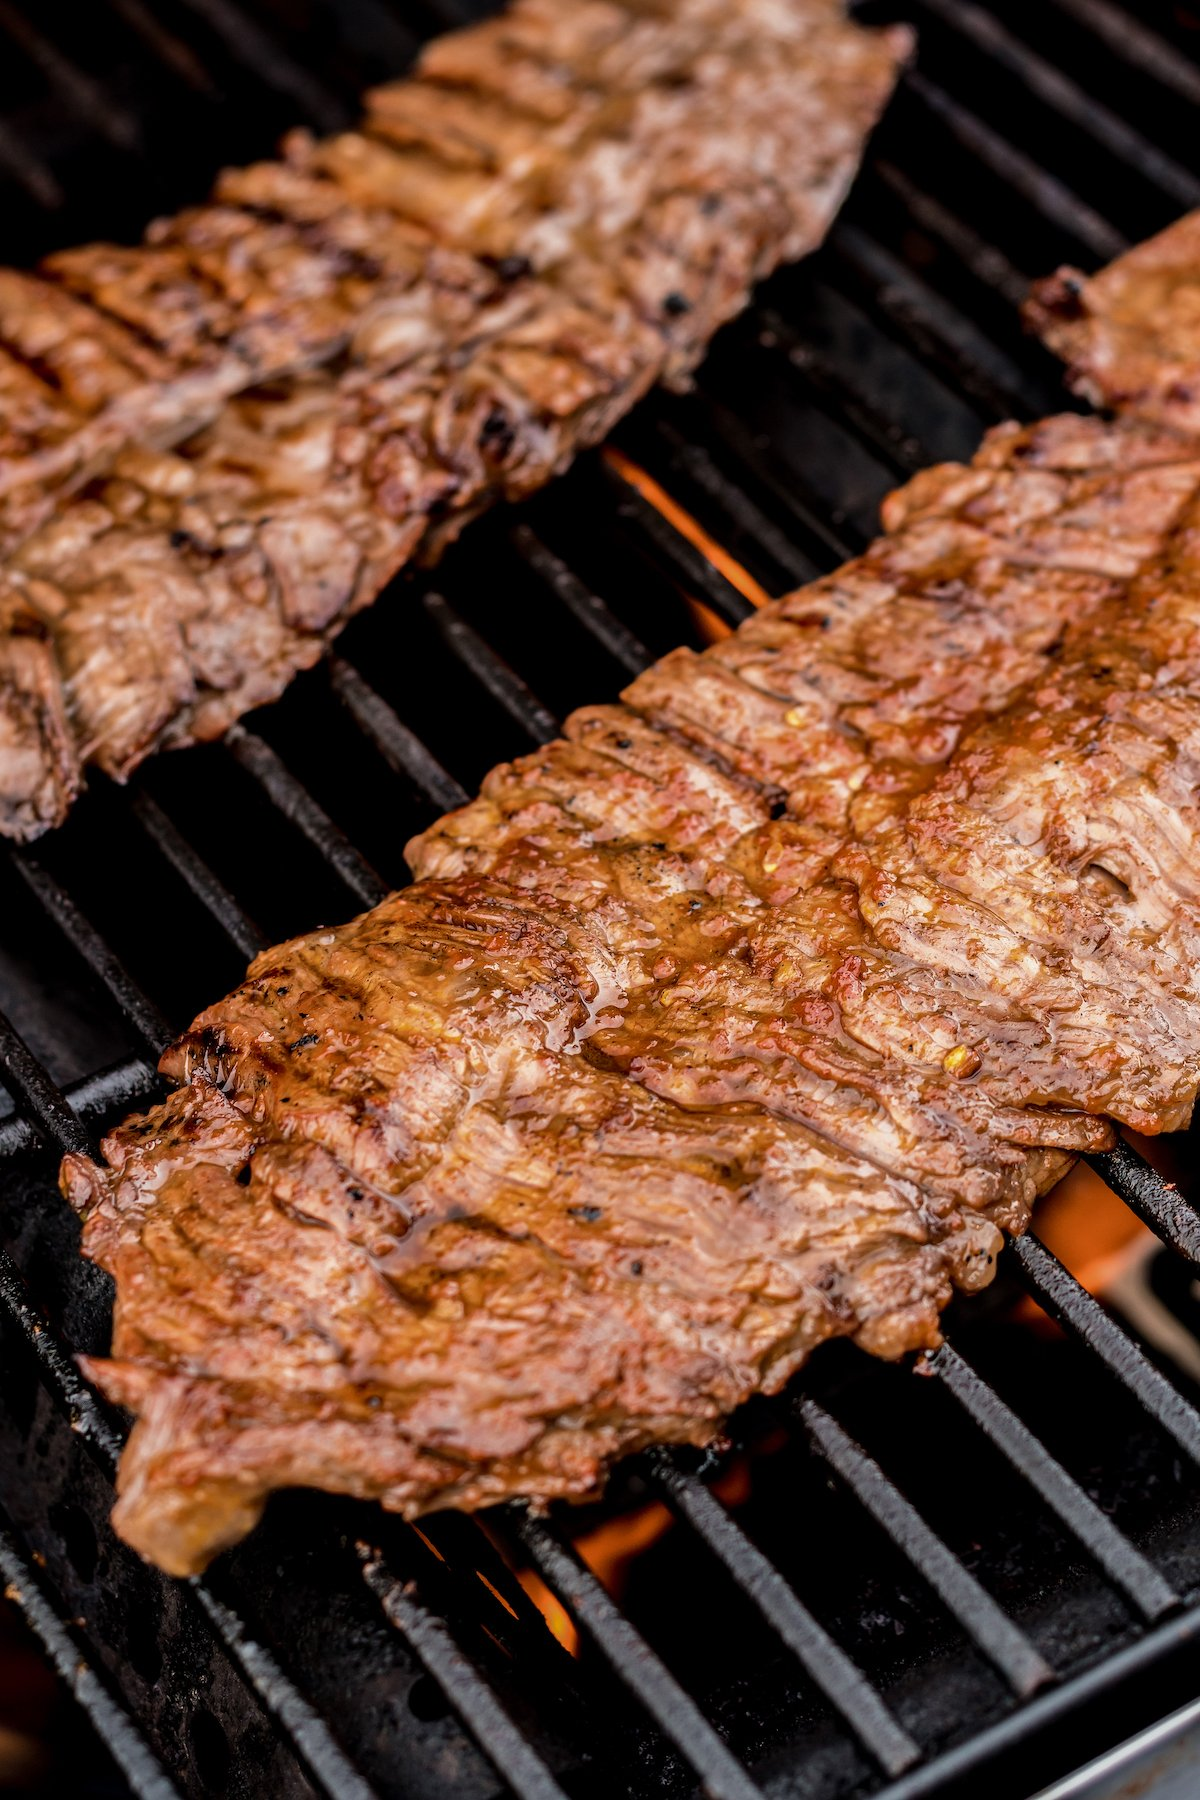 Flank steaks on the grill.